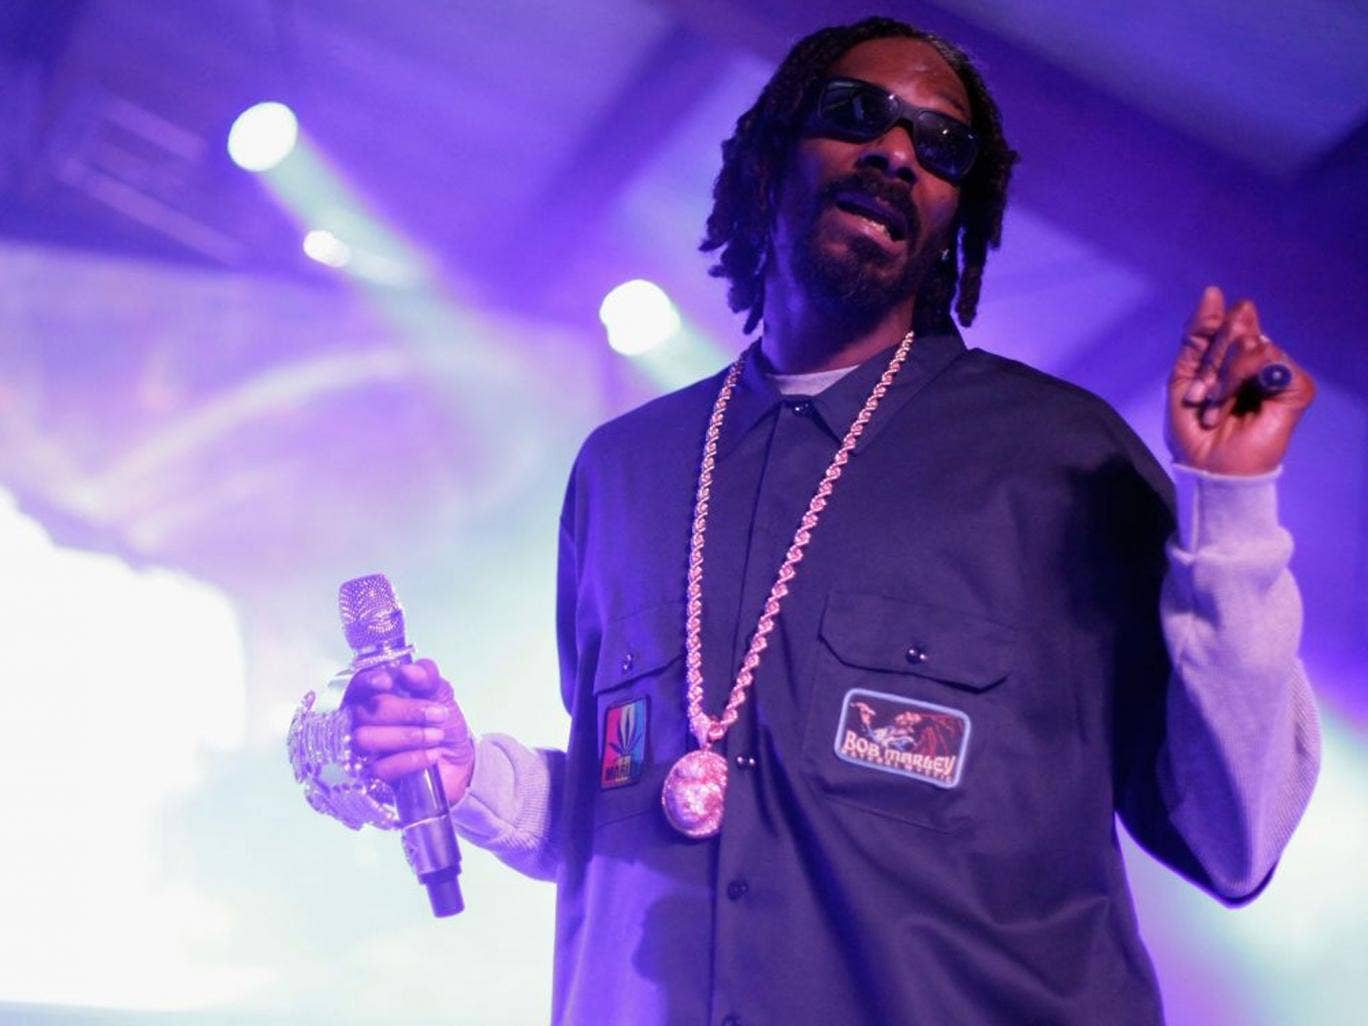 Snoop Dogg performs at this year's SXSW Festival